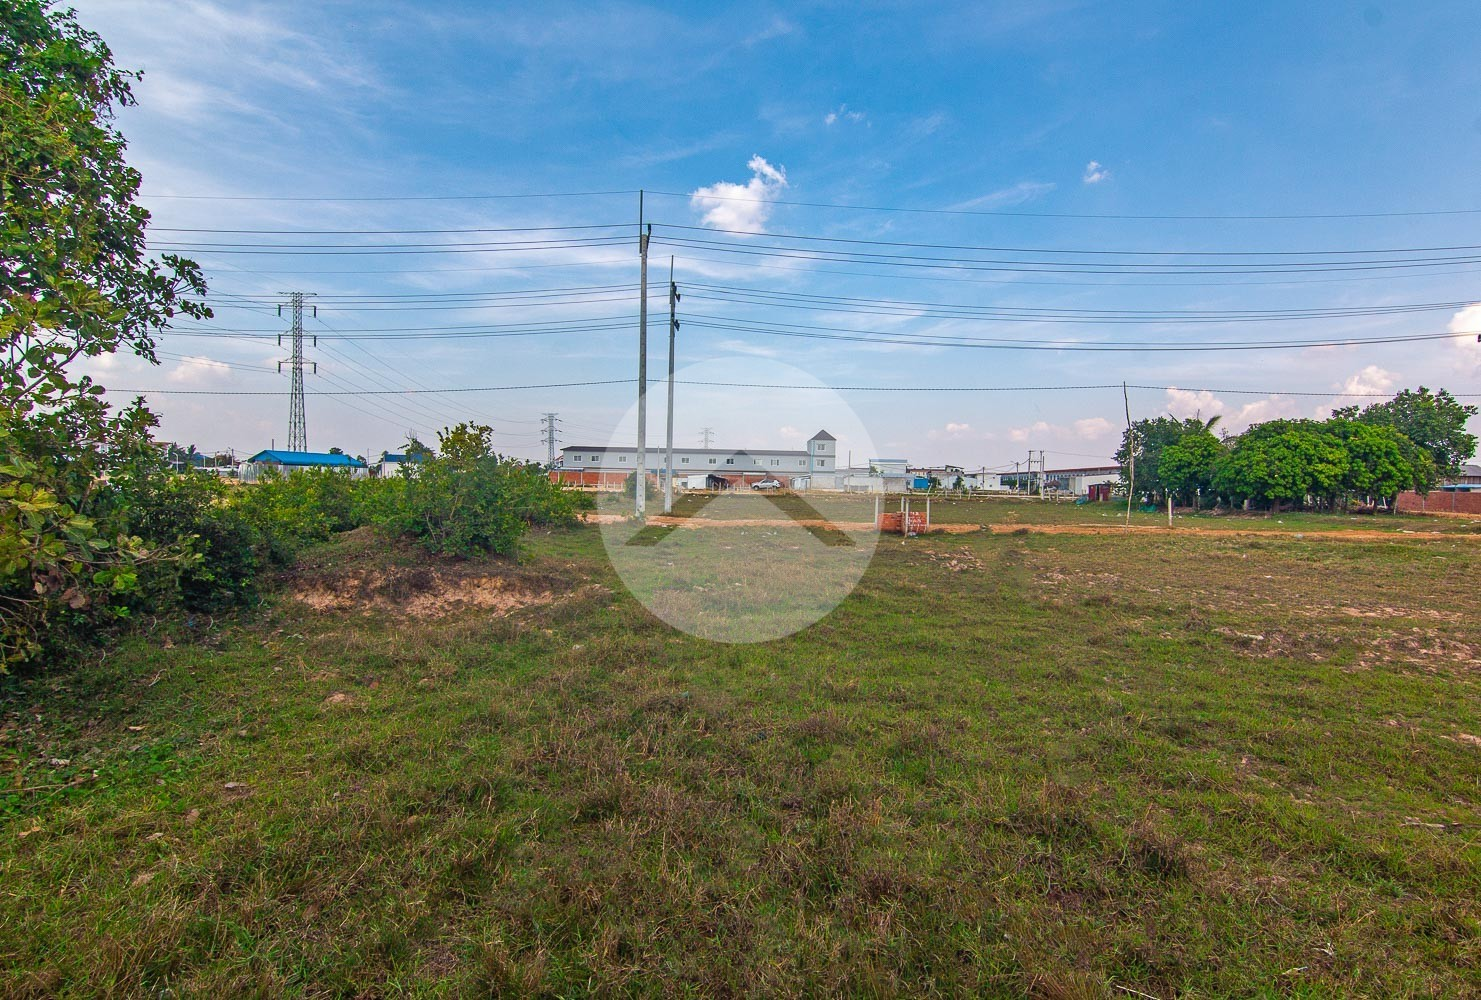 466 Sqm Residential Land For Sale - Svay Thom, Siem Reap